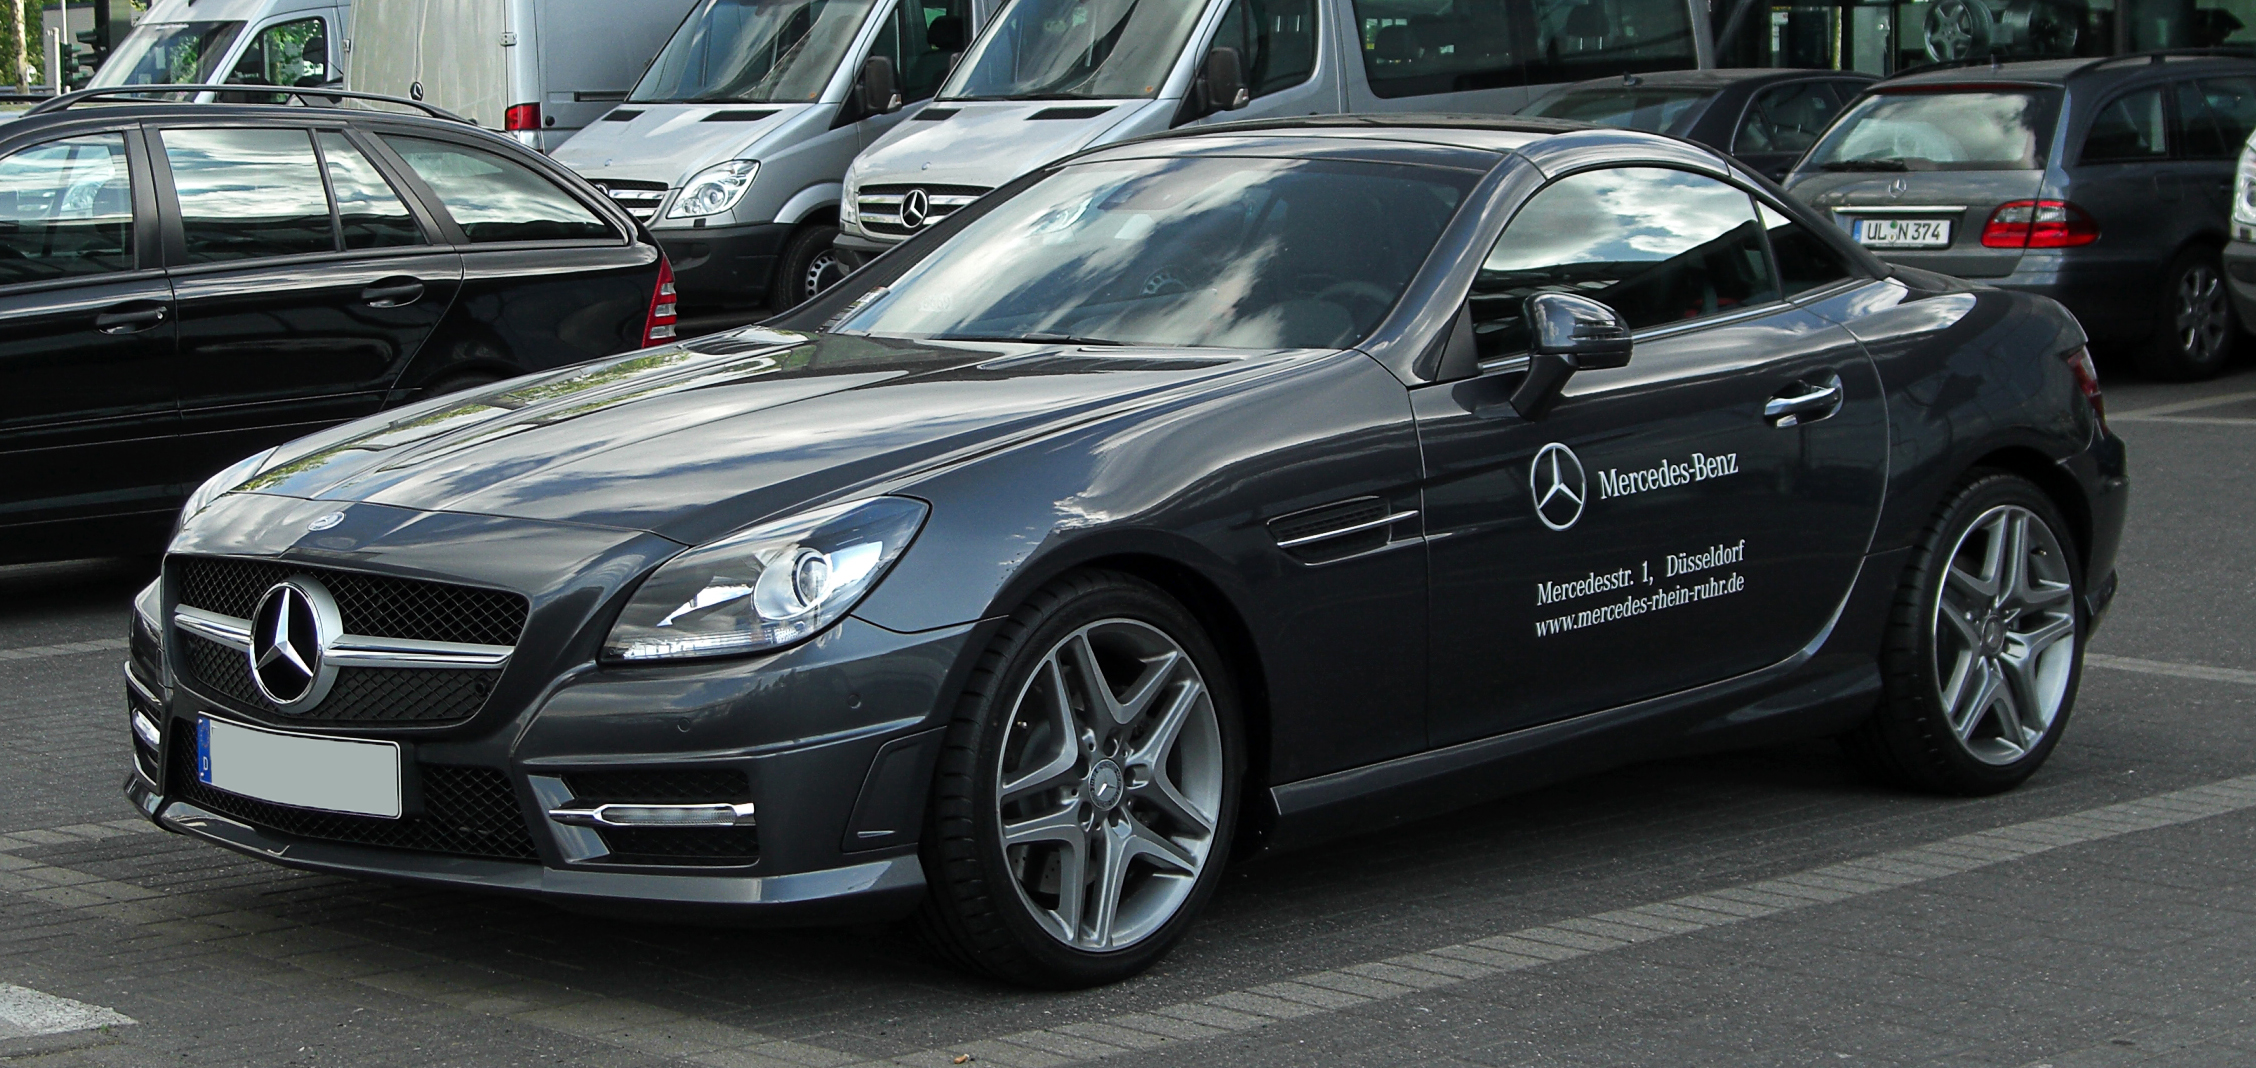 File mercedes benz slk 350 blueefficiency sport paket amg for Mercedes benz slk 350 amg